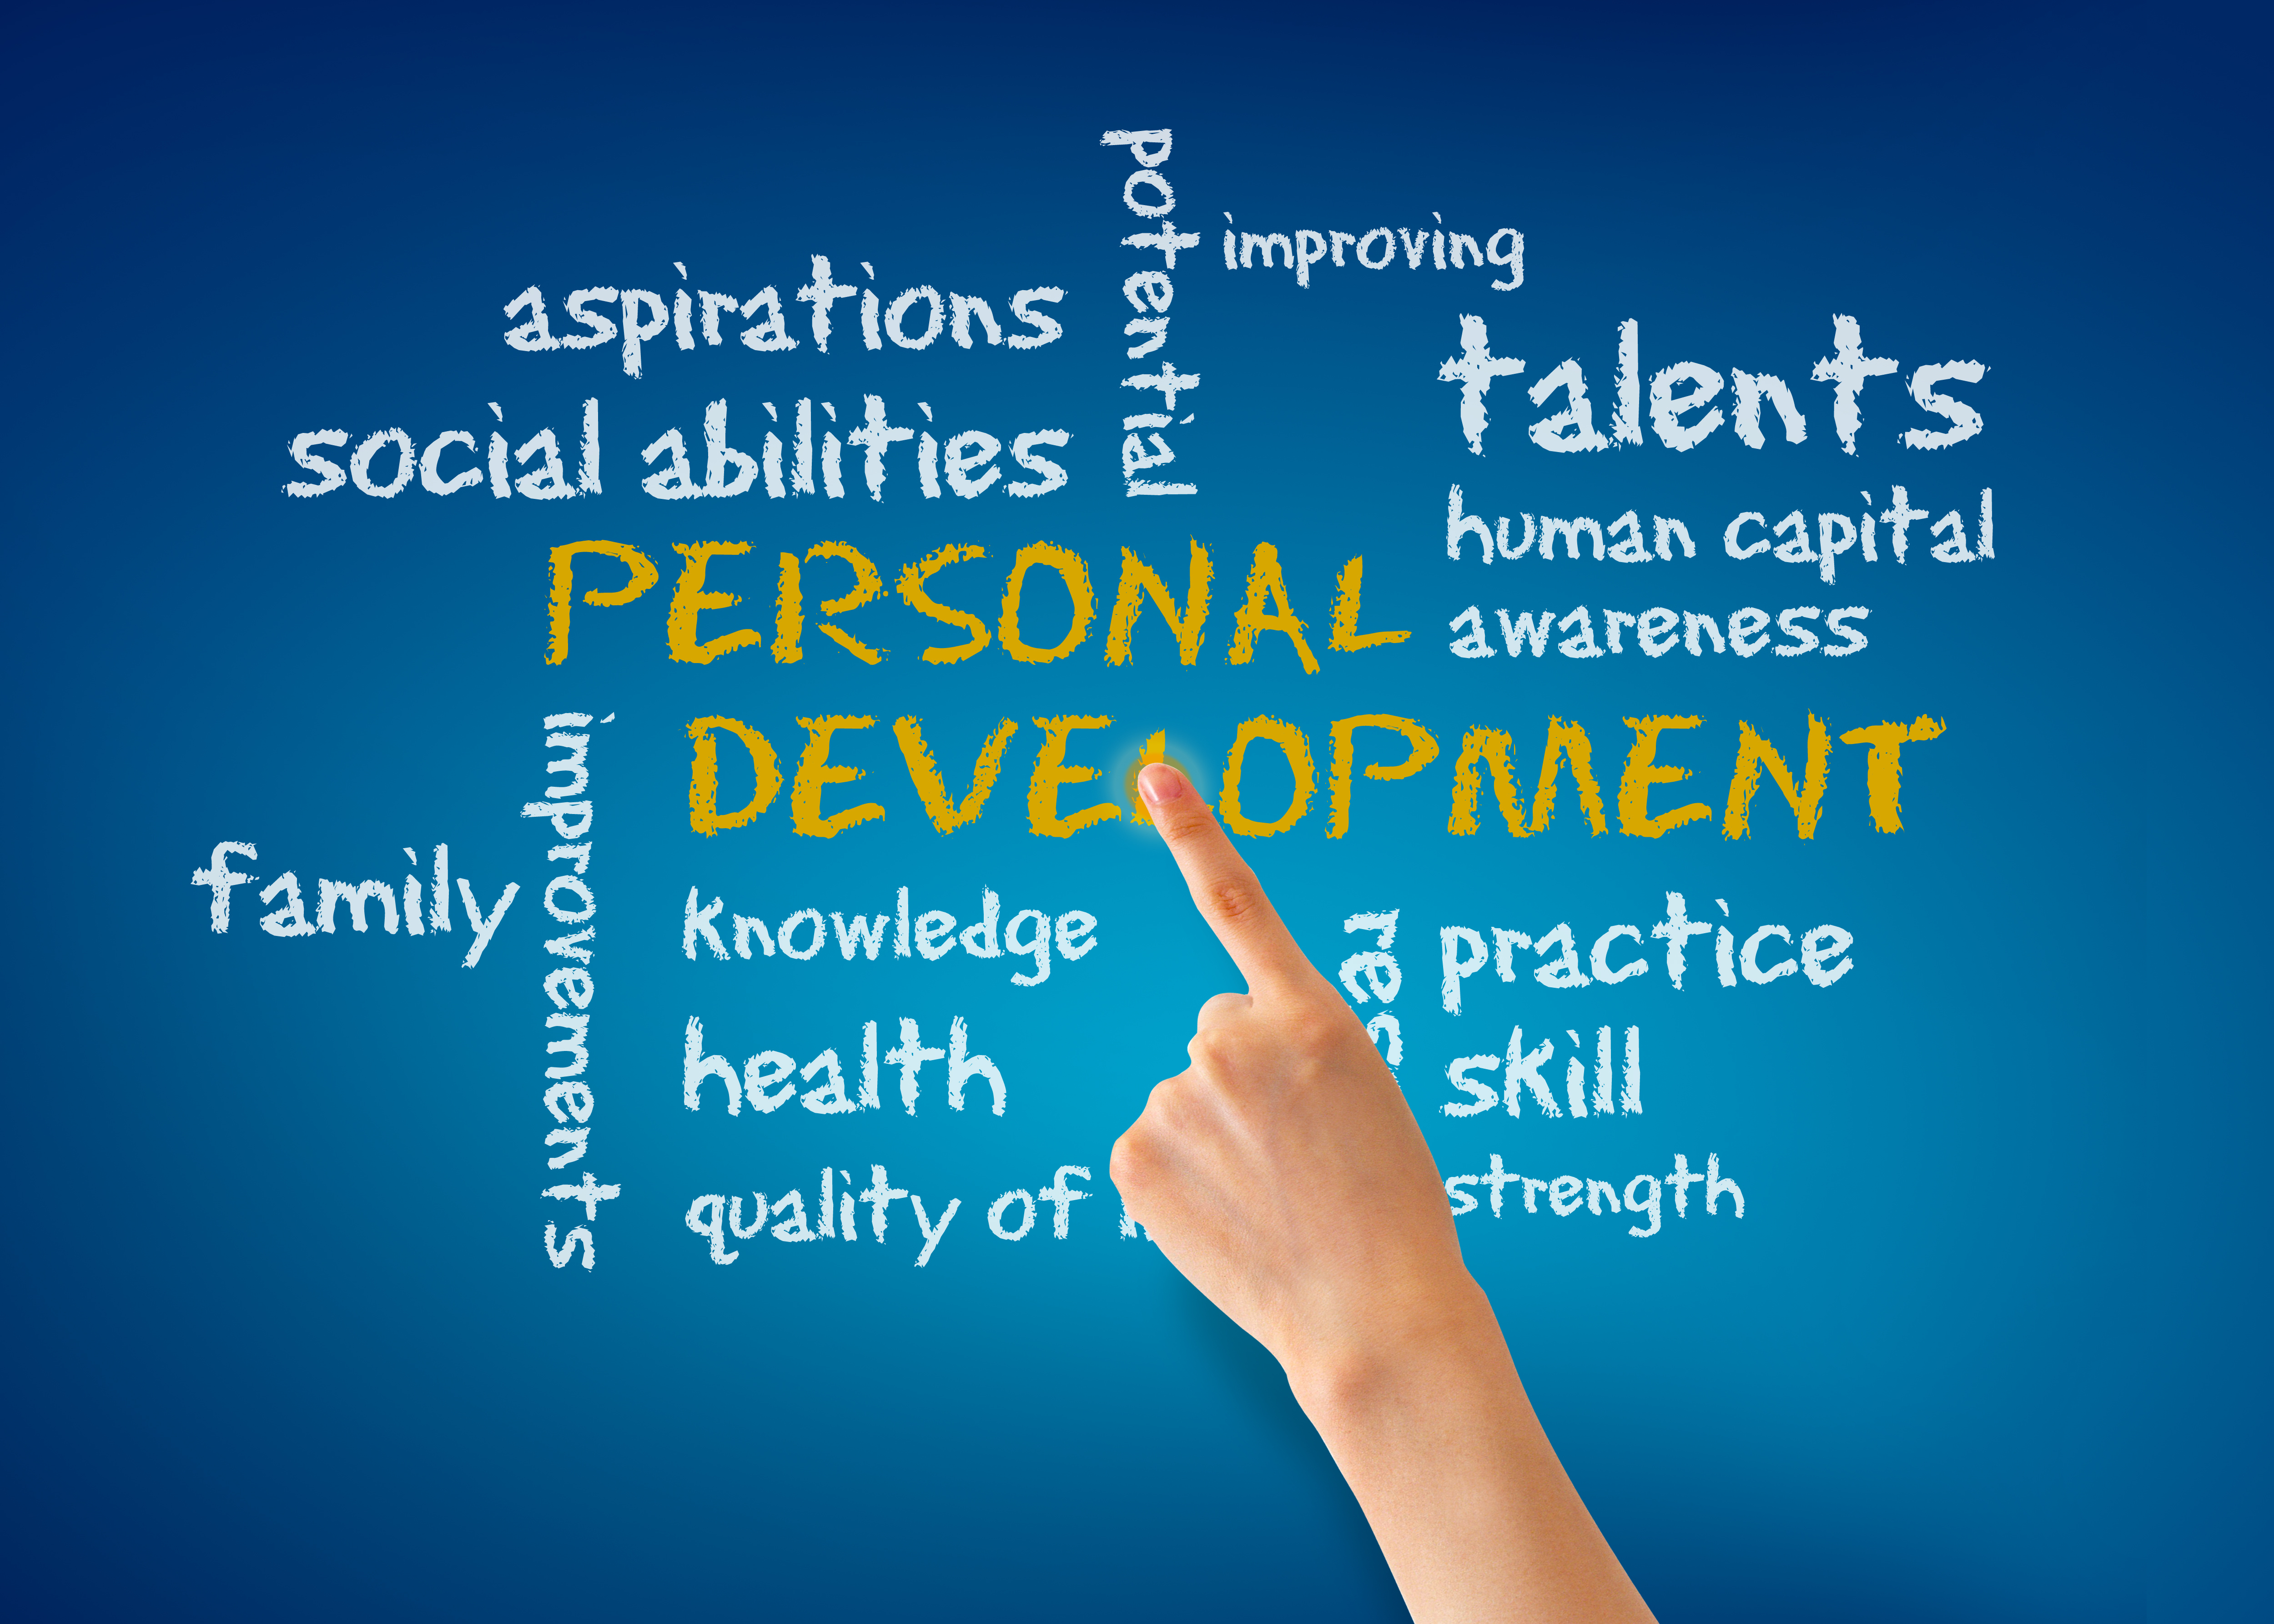 personal developmental skill Develop personally and professionally as a manager with this practical book.